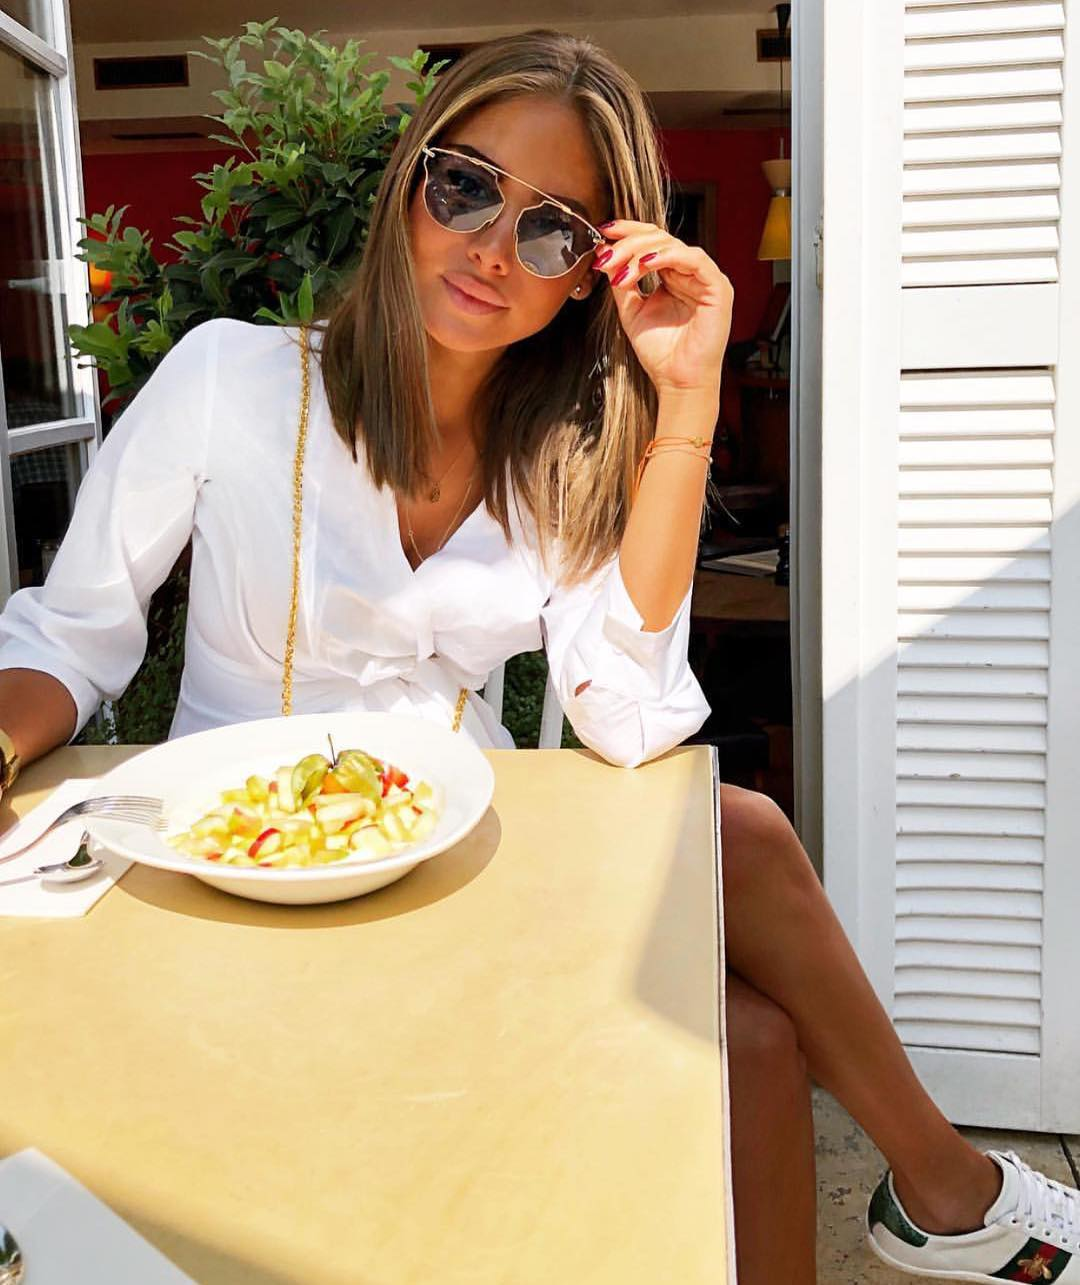 Crispy White Wrap Dress With White Sneakers And Cat Eye Sunglasses 2019